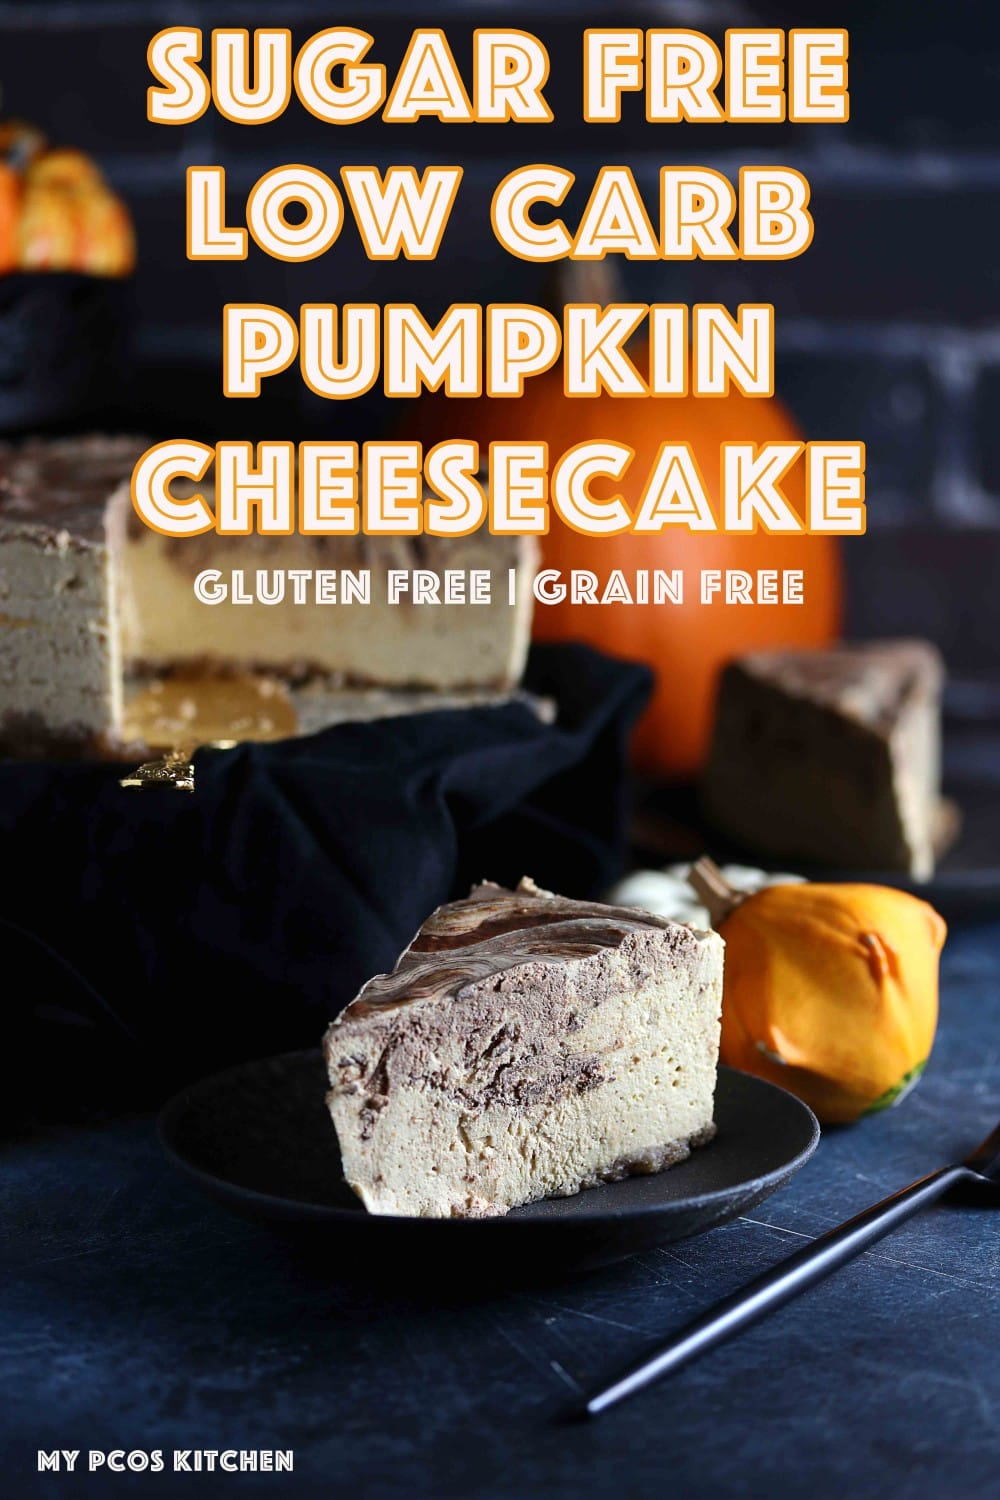 How to make a Sugar Free Low Carb Pumpkin Cheesecake - My PCOS Kitchen - This chocolate covered no bake pumpkin cheesecake is so fluffy and delicious! Perfect for the holidays! #pumpkincheesecake #lowcarbcheesecake #sugarfreecheesecake #lowcarbhalloween #lowcarbthanksgiving #sugarfree #lowcarb #keto #lchf #glutenfree #sugarfreeholidays